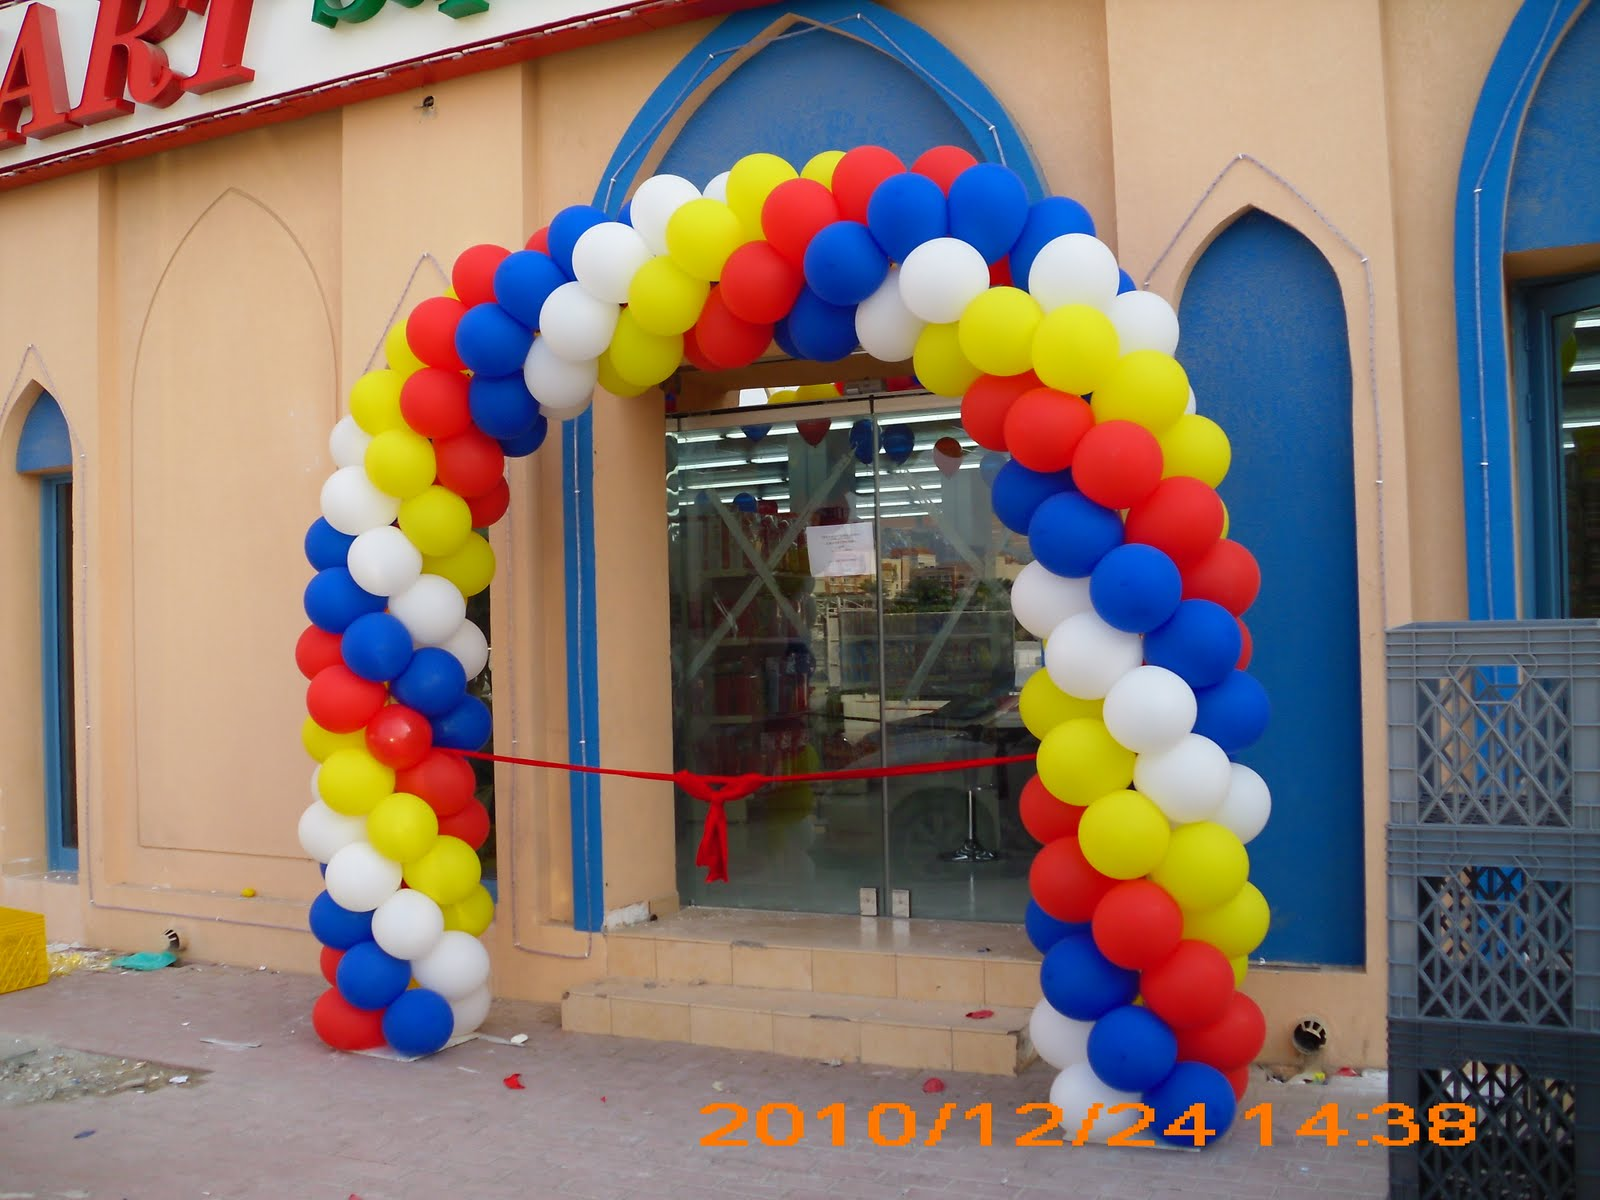 UAE Balloon Decoration